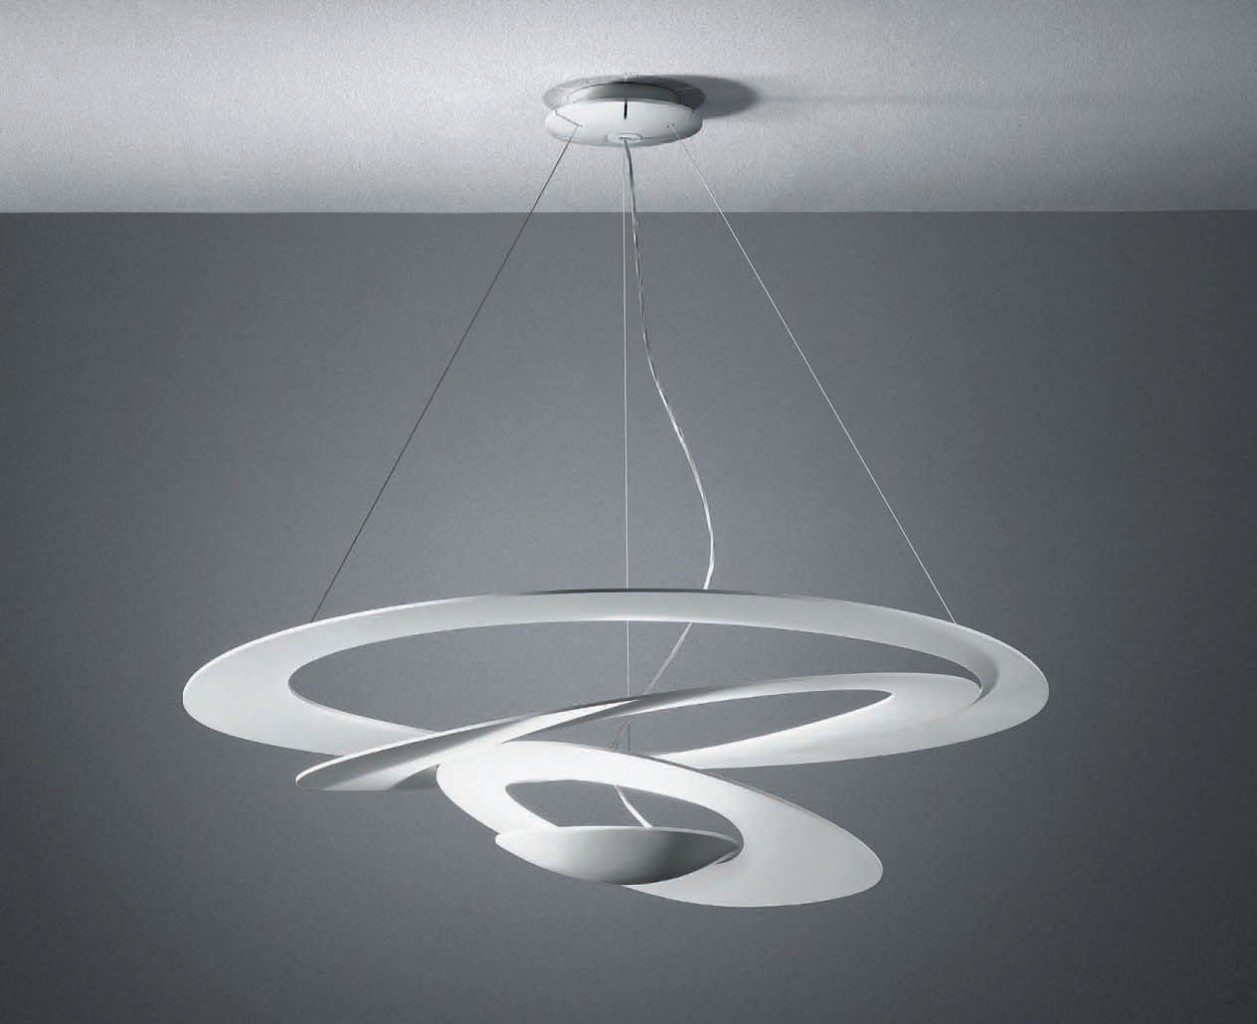 seaseight design blog light design un mare di lampade